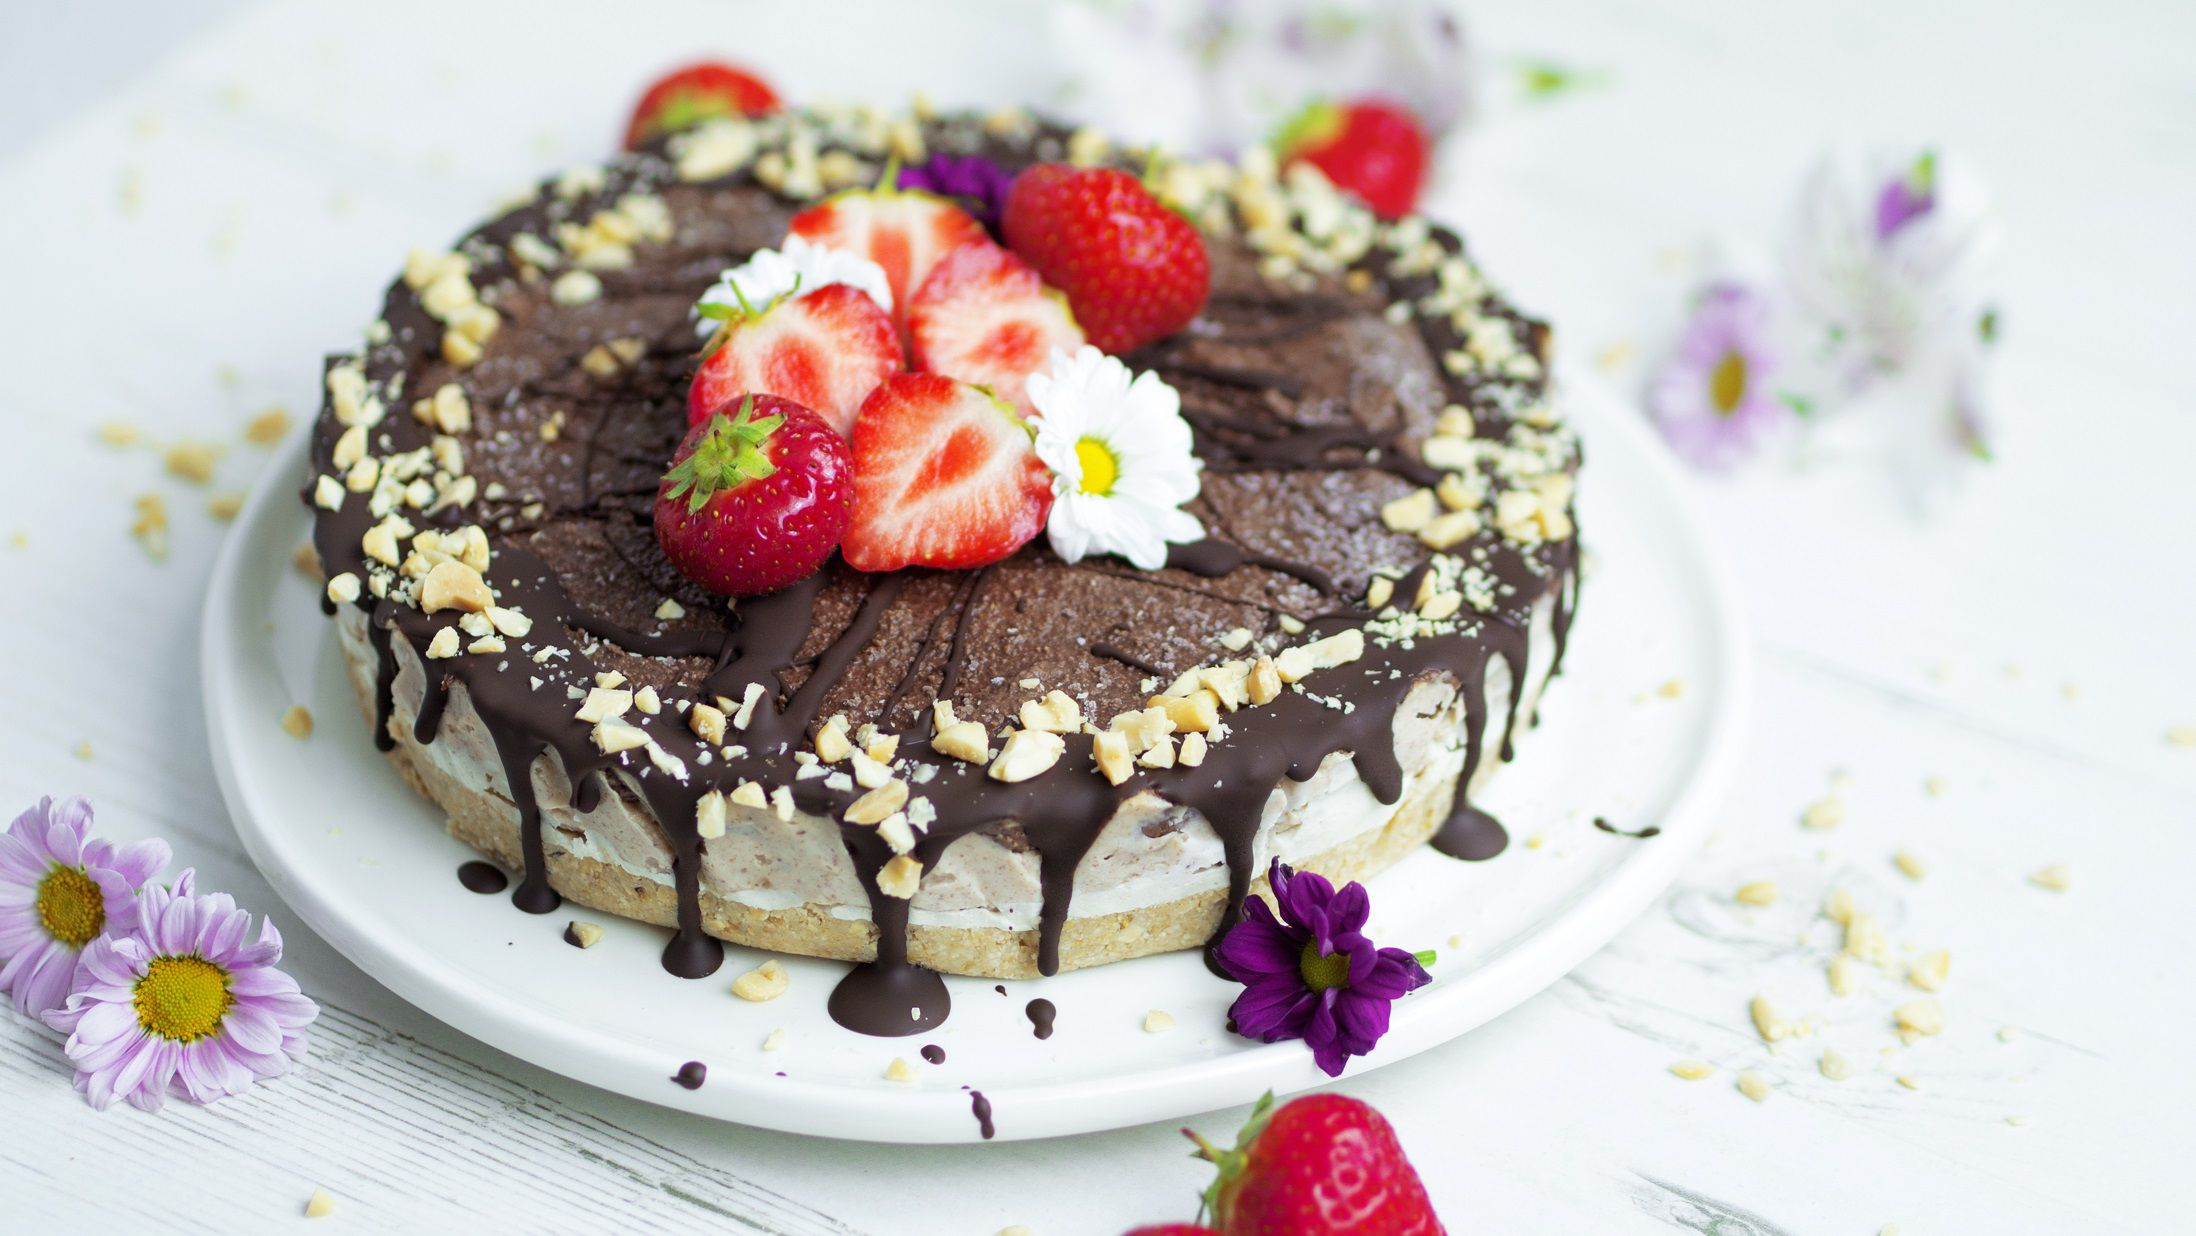 National Peanut Butter Day recipe – here's how to make a raw peanut butter chocolate cheesecake